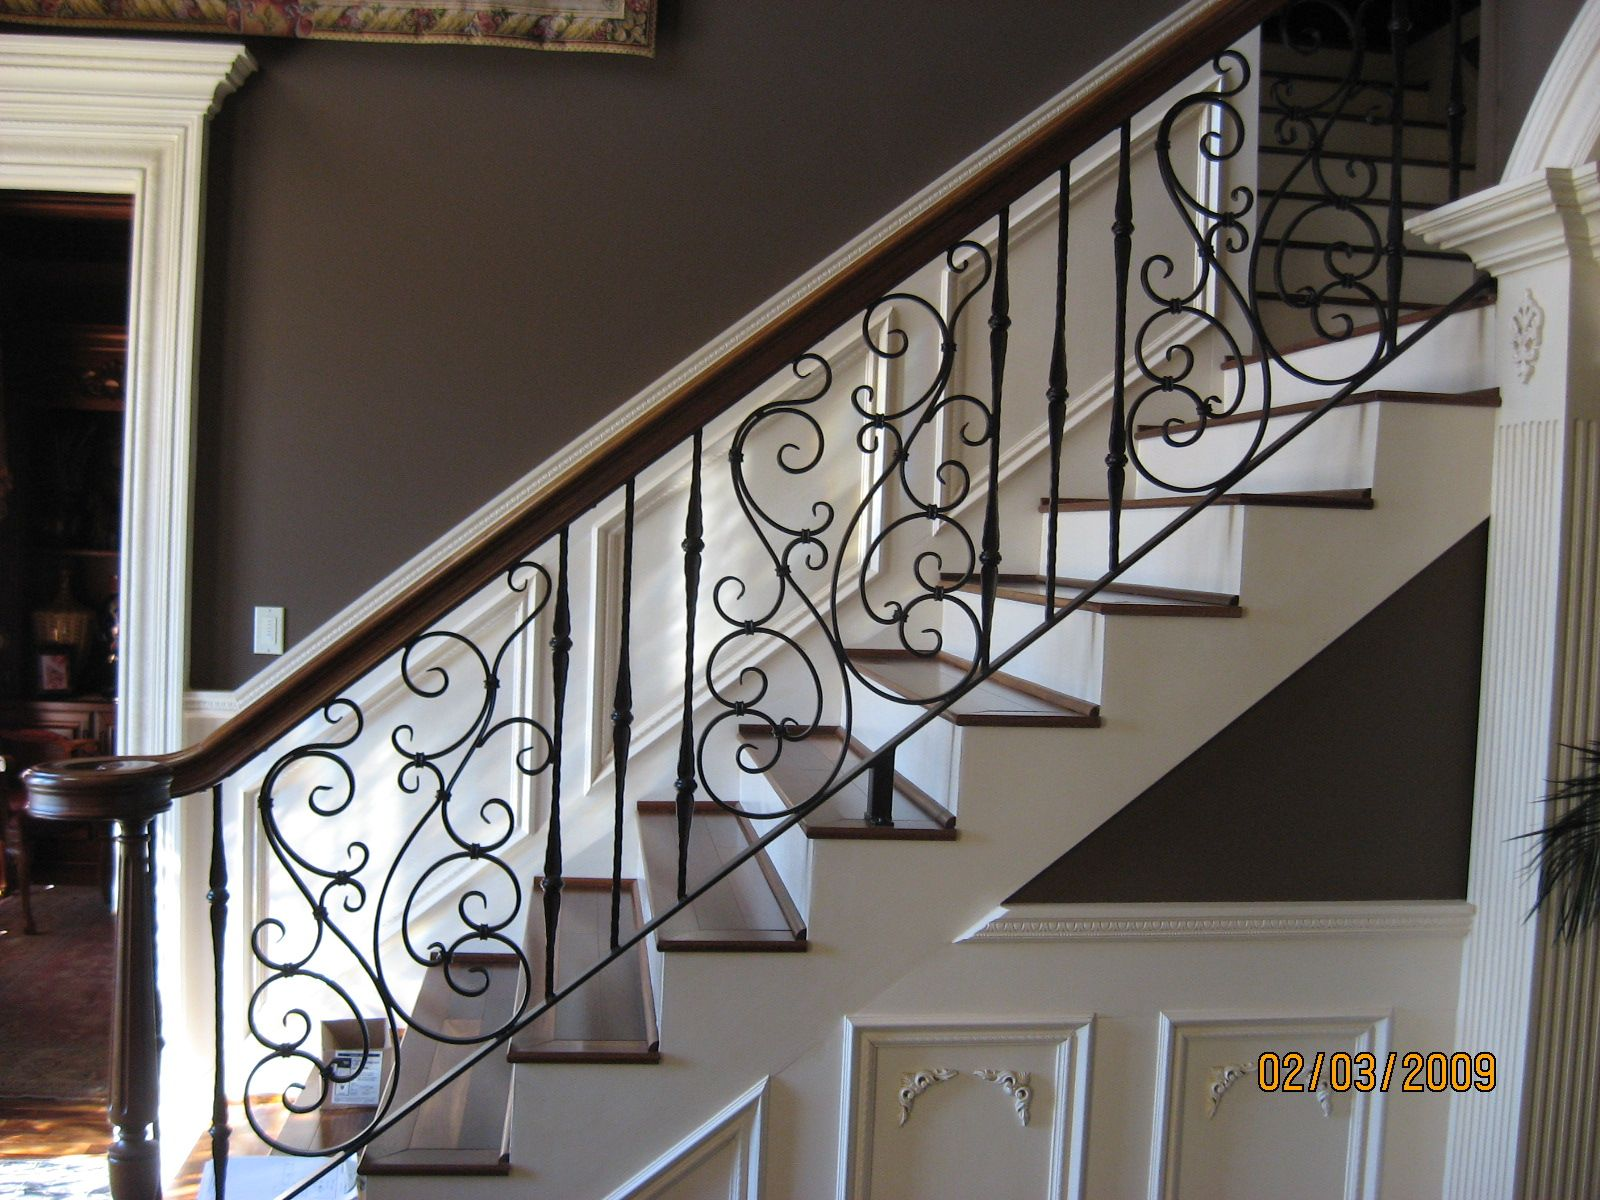 Rai0504 Wrought Iron Railing Stair Railing Design Modern Stair Railing Wrought Iron Stair Railing